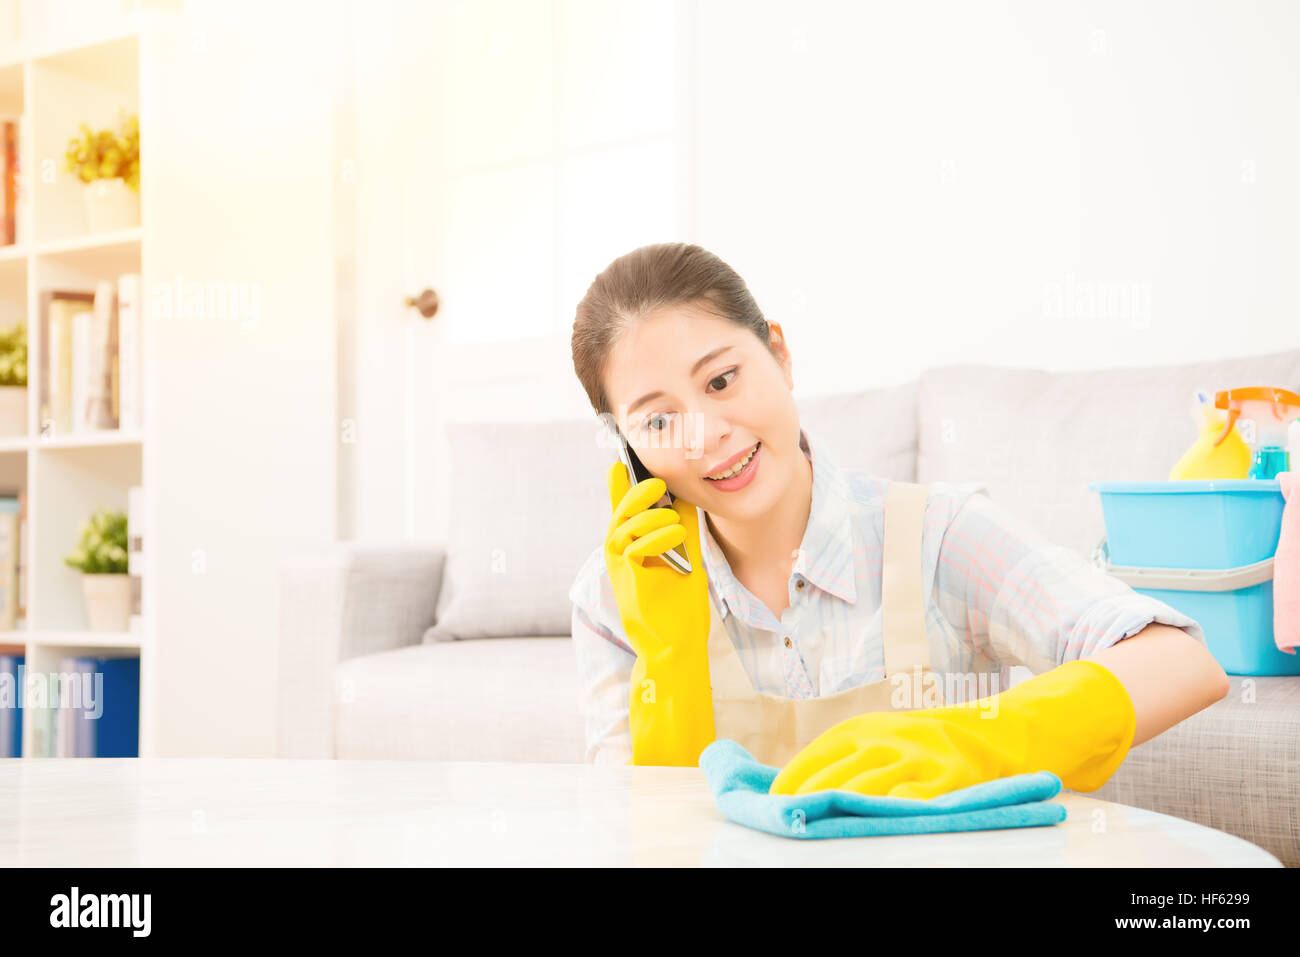 Smiling girl cleaning with glove and speaking on the phone. Pretty smiling young mixed race Asian girl Stock Photo